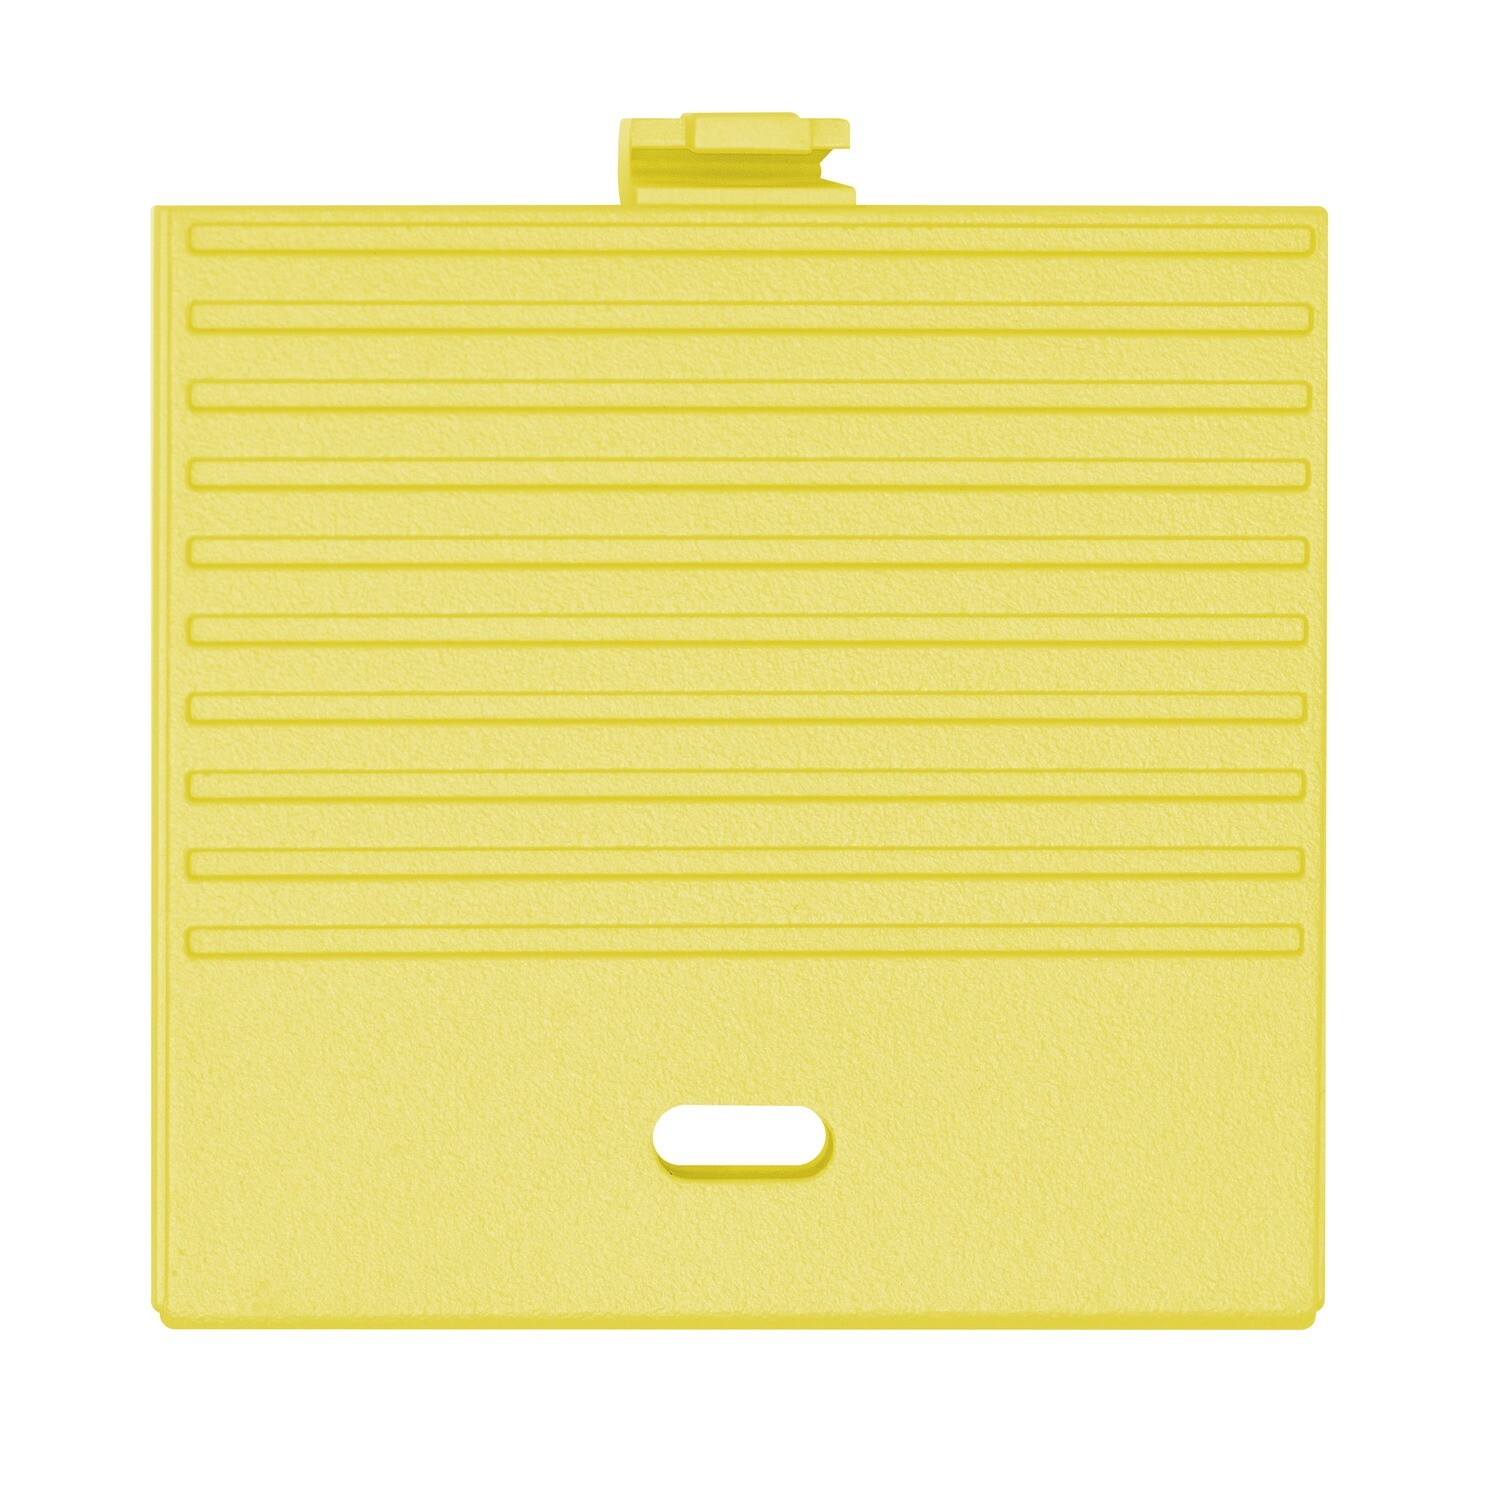 Game Boy Original USB-C Battery Cover (Pearl Yellow)